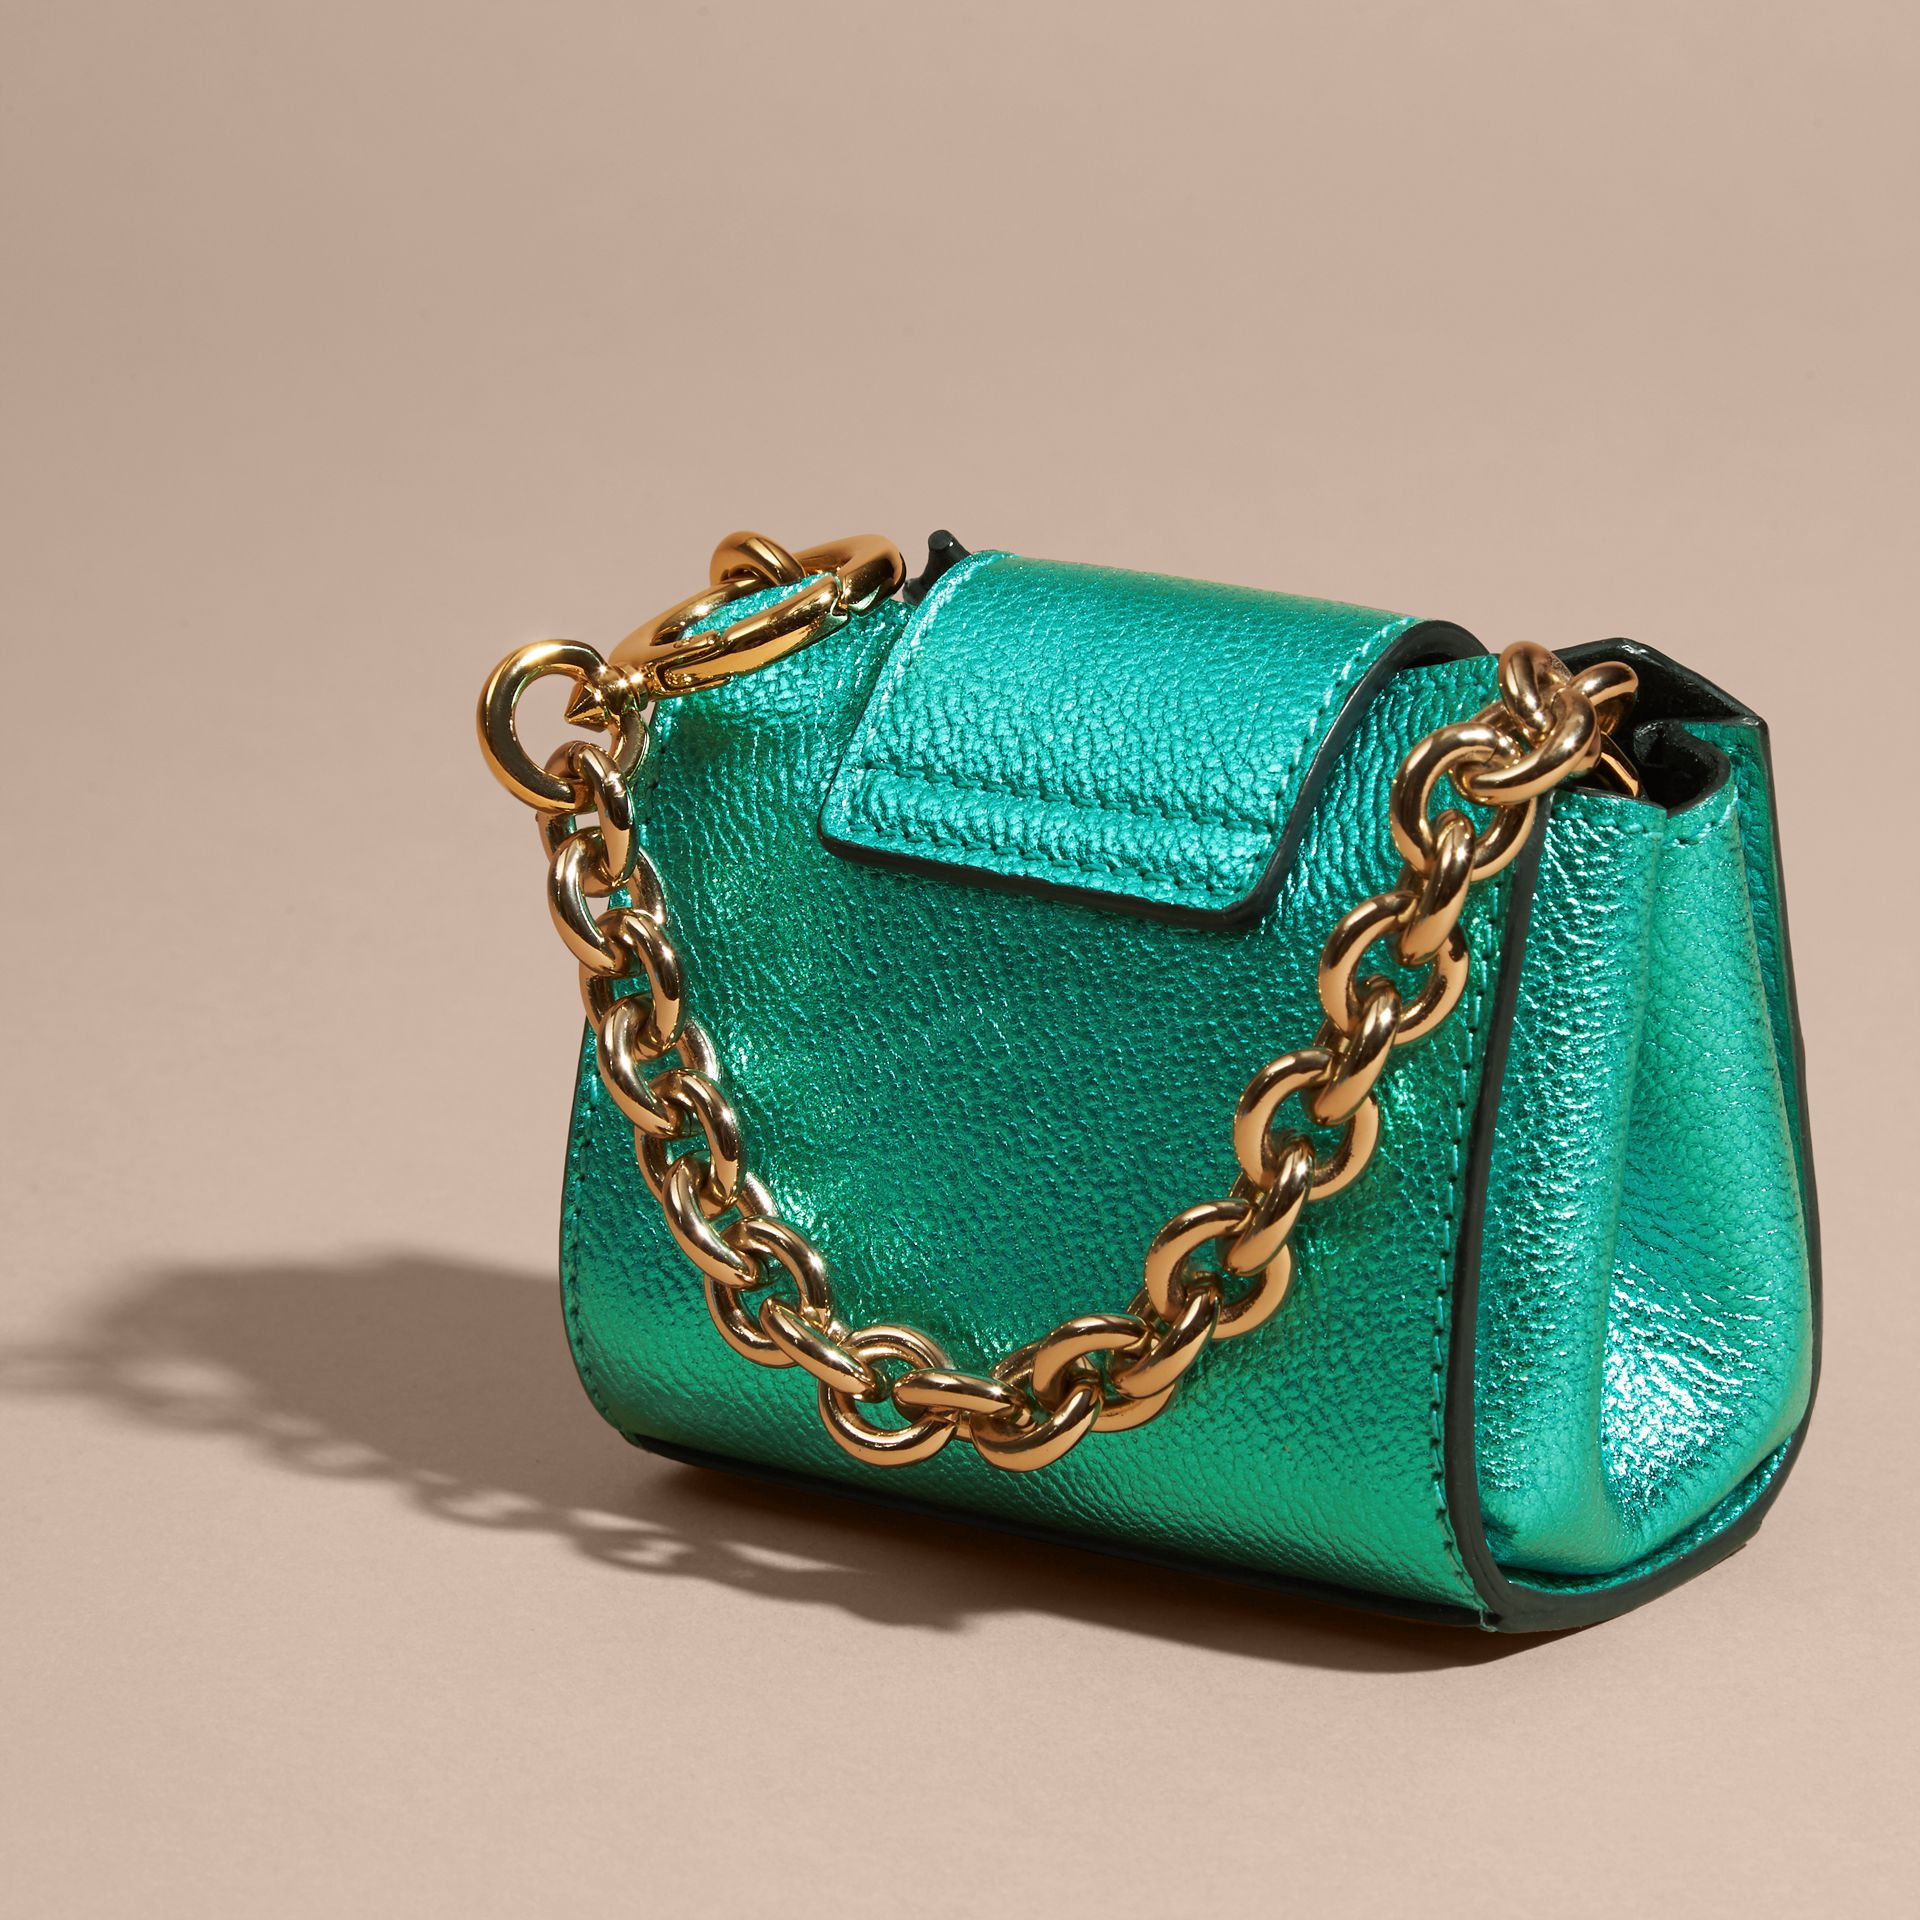 Emerald The Mini Buckle Tote Charm in Metallic Leather Emerald - gallery image 4